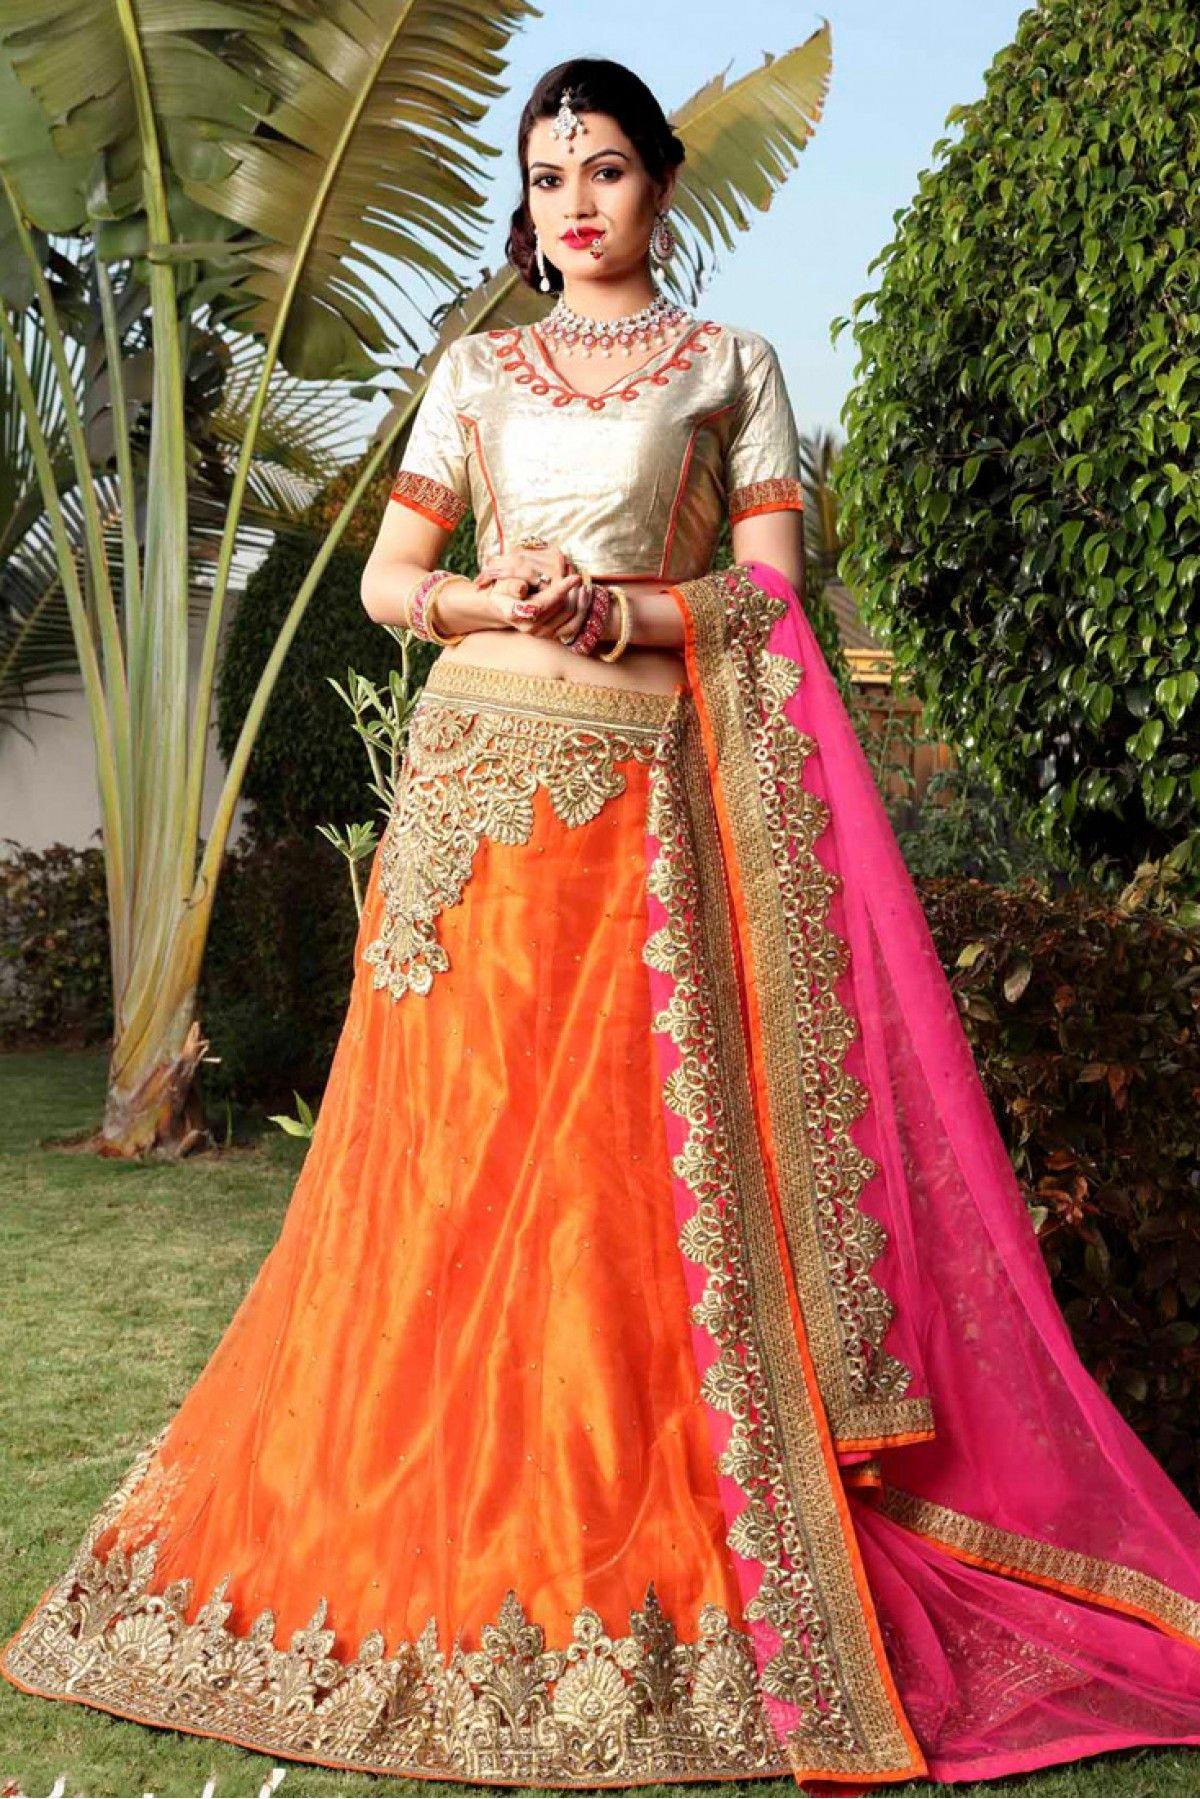 508276f480042d Orange Colour Net Fabric Party Wear A Line Lehenga Choli Comes With  Matching Art Silk Blouse and Net Fabric Dupatta. This Lehenga Choli Is  Crafted With ...